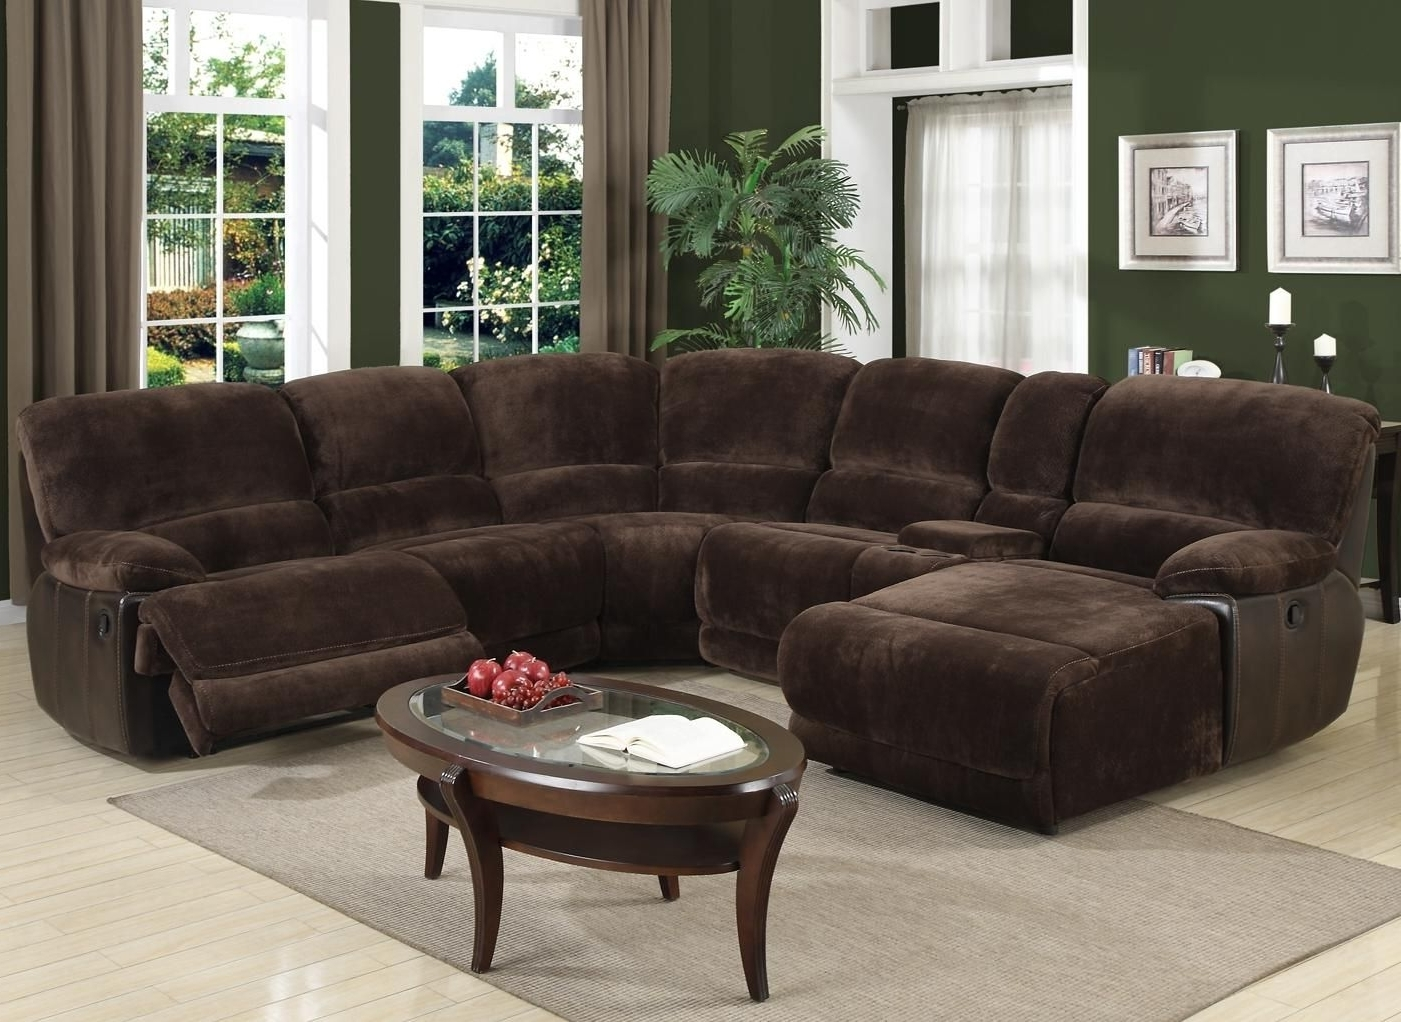 Latest Motion Masters 3460 Casual Raf Chaise Reclining Sectional – Reeds For Motion Sectional Sofas (View 7 of 20)